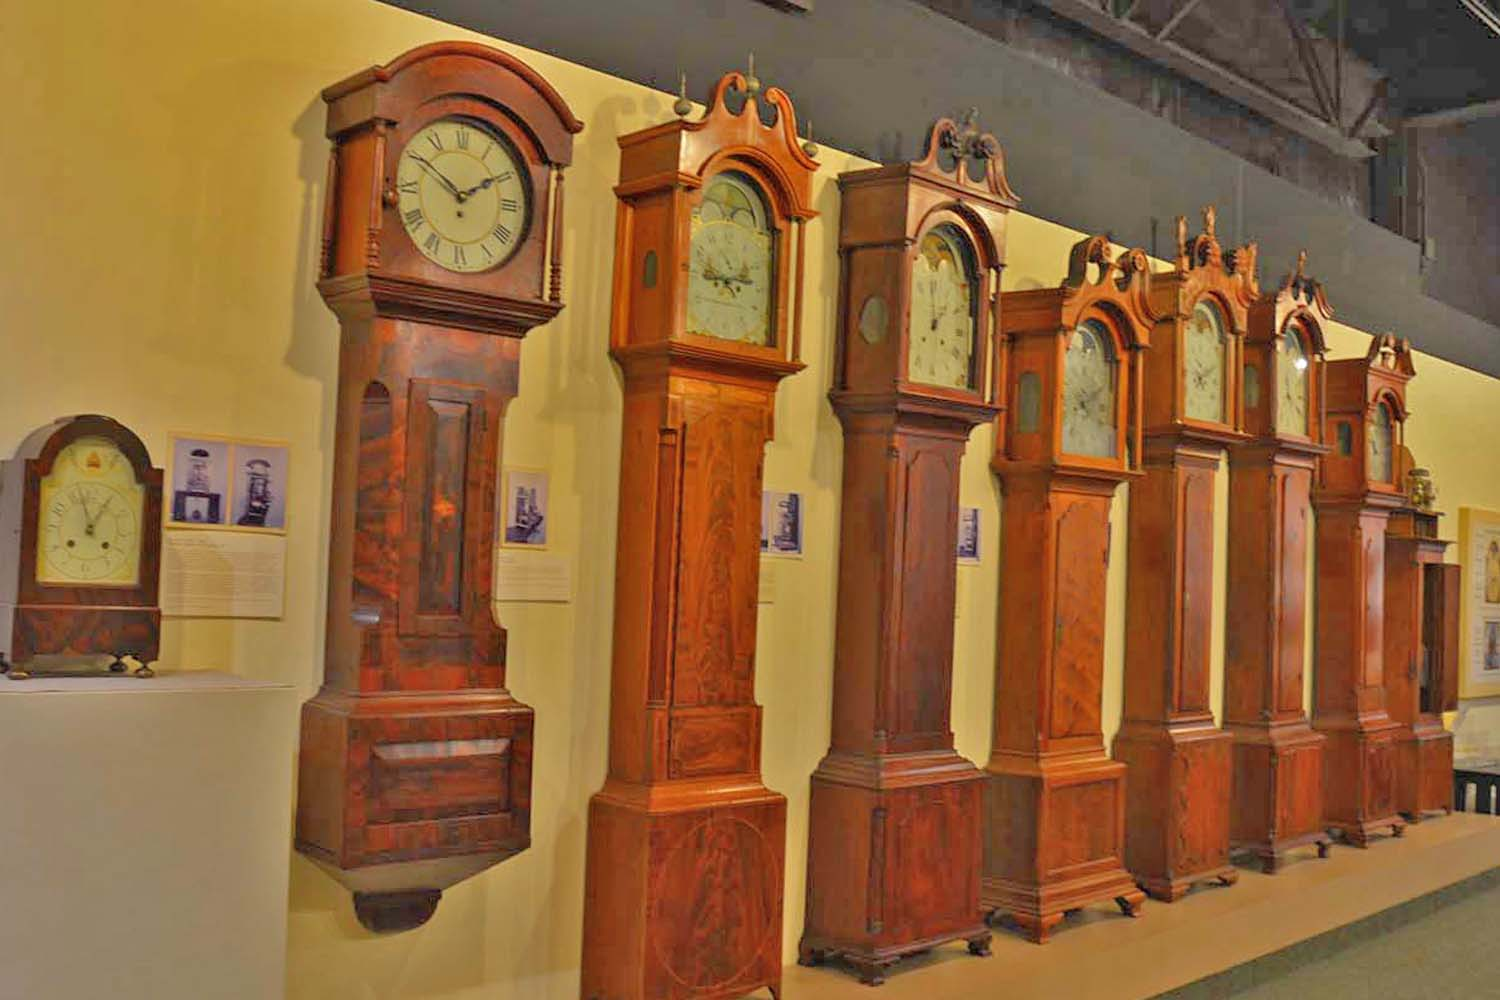 Really enjoyed seeing these old clocks